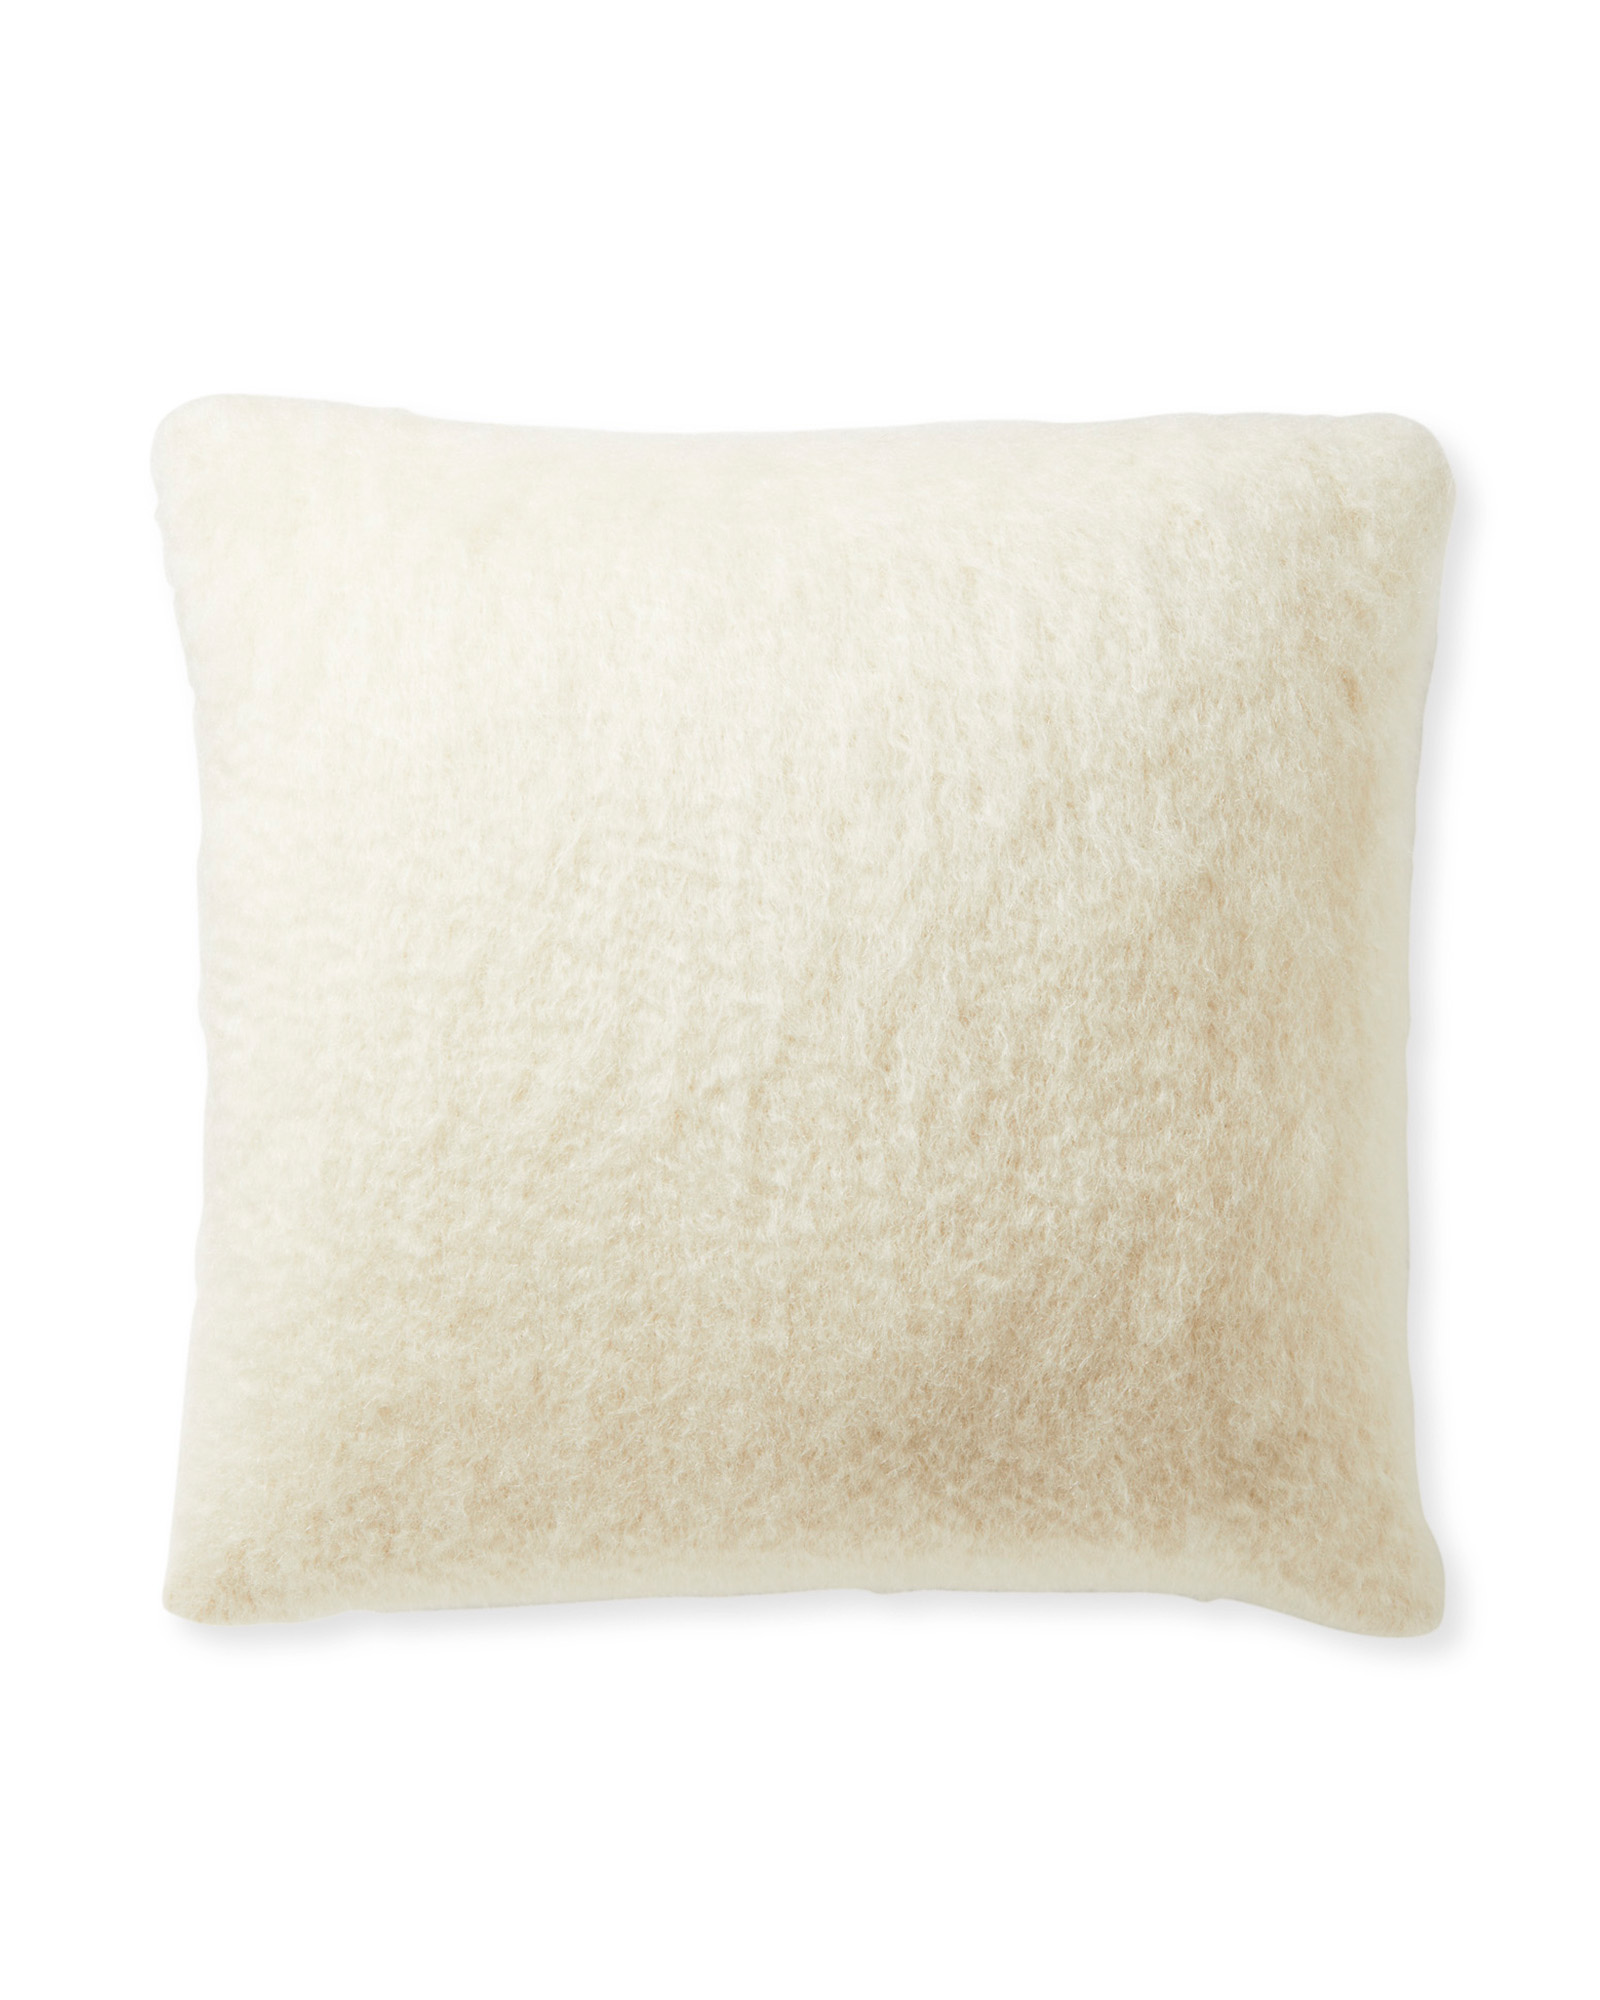 Albion Pillow Cover, Ivory